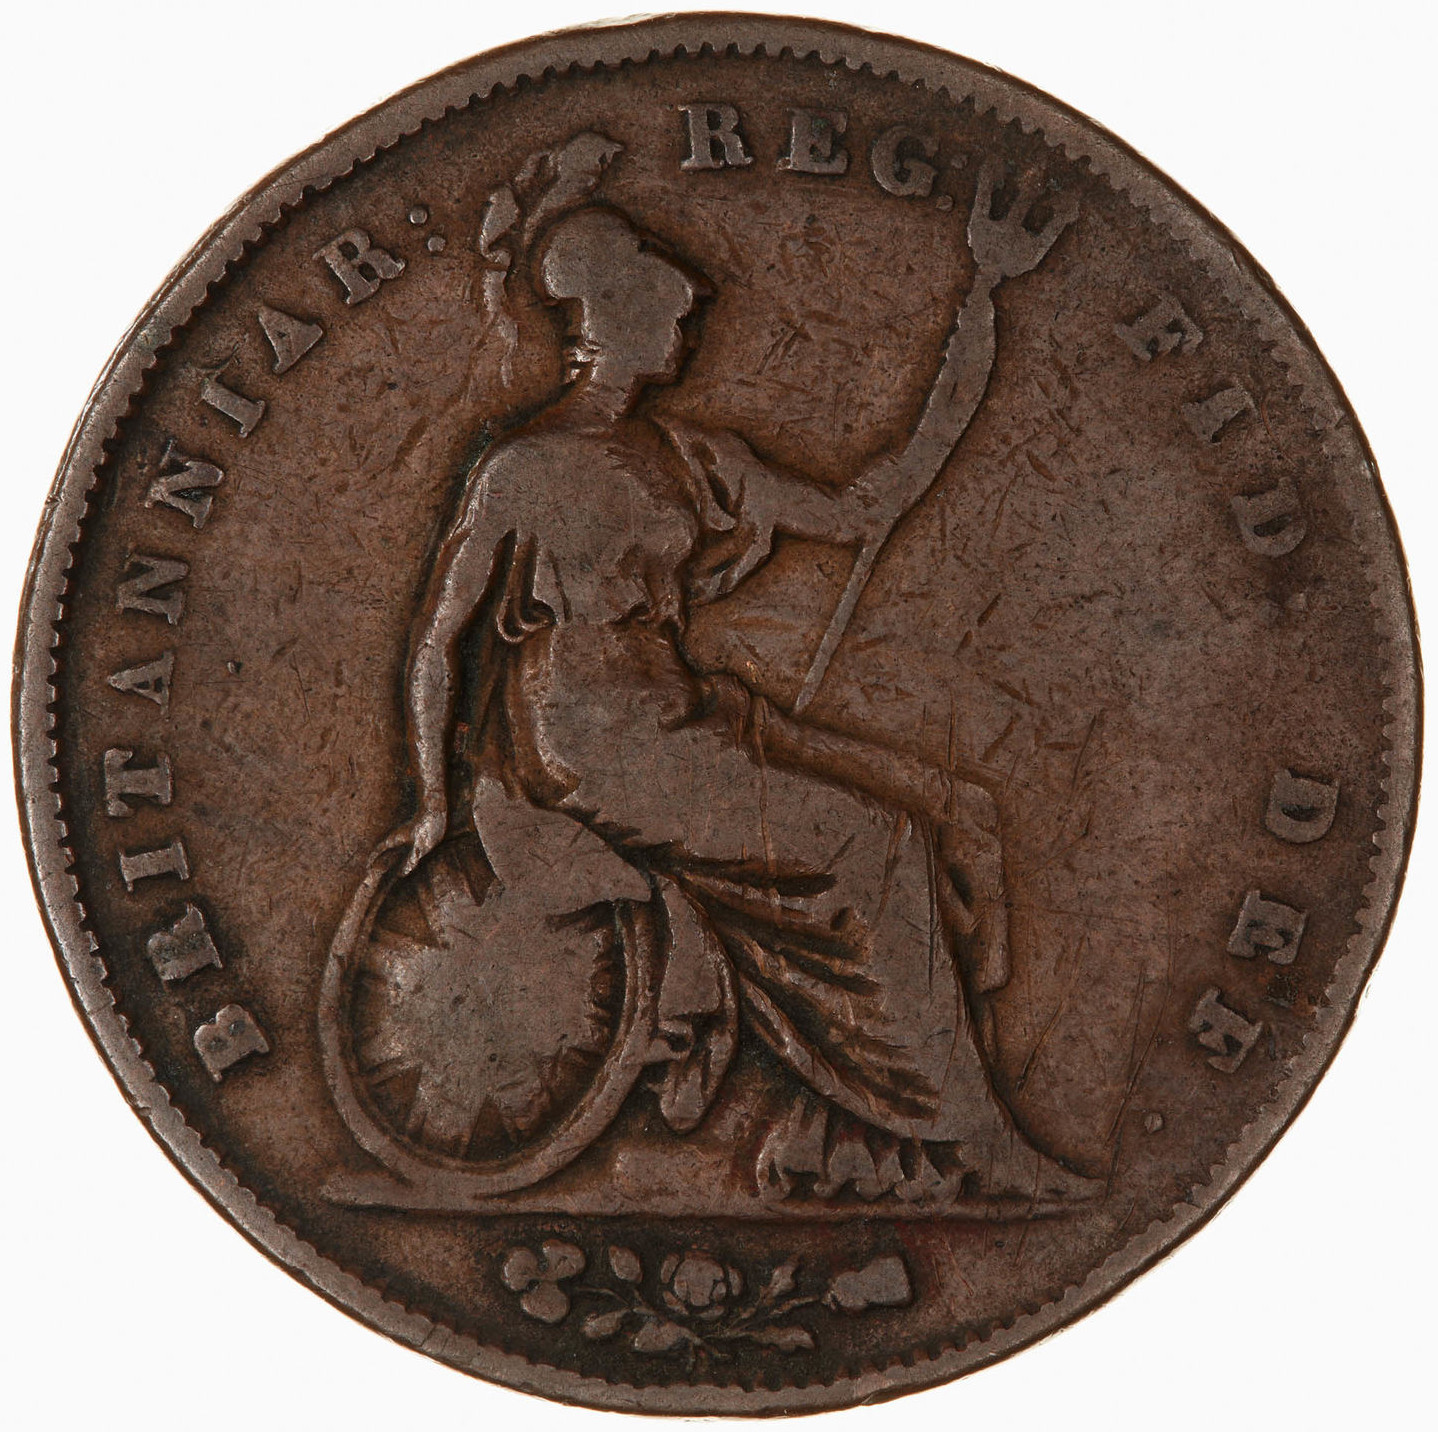 Penny 1845: Photo Coin - Penny, Queen Victoria, Great Britain, 1845